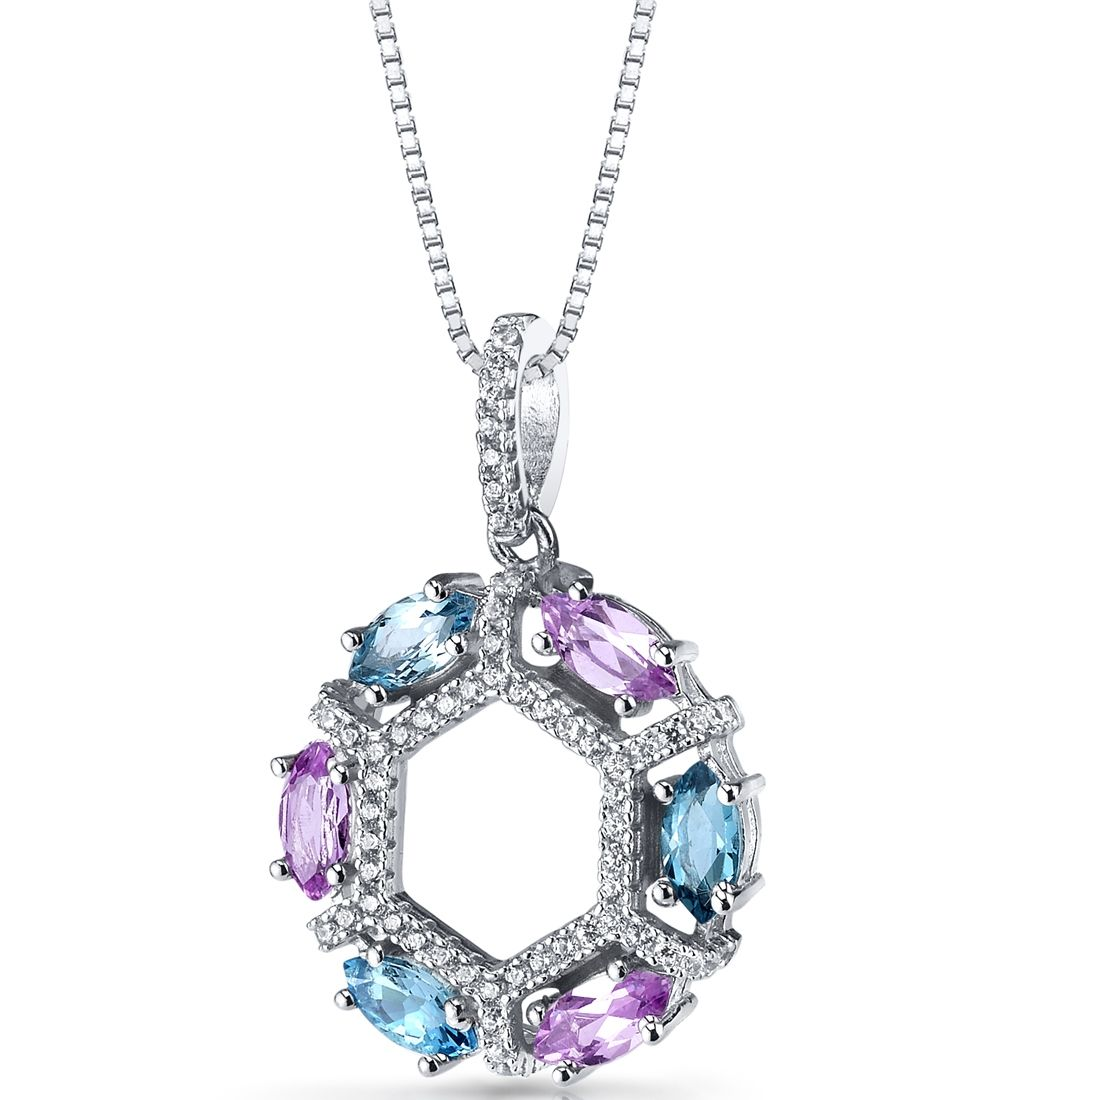 MSRP: $199.99  Our Price: 99.99  Savings: 100.00    Item Number: SP11236    Availability: Usually Ships in 5 Business Days    PRODUCT DESCRIPTION:    Crafted in Fine Sterling Silver, this beautiful pendant for her features Genuine Swiss Blue Topaz and Lab